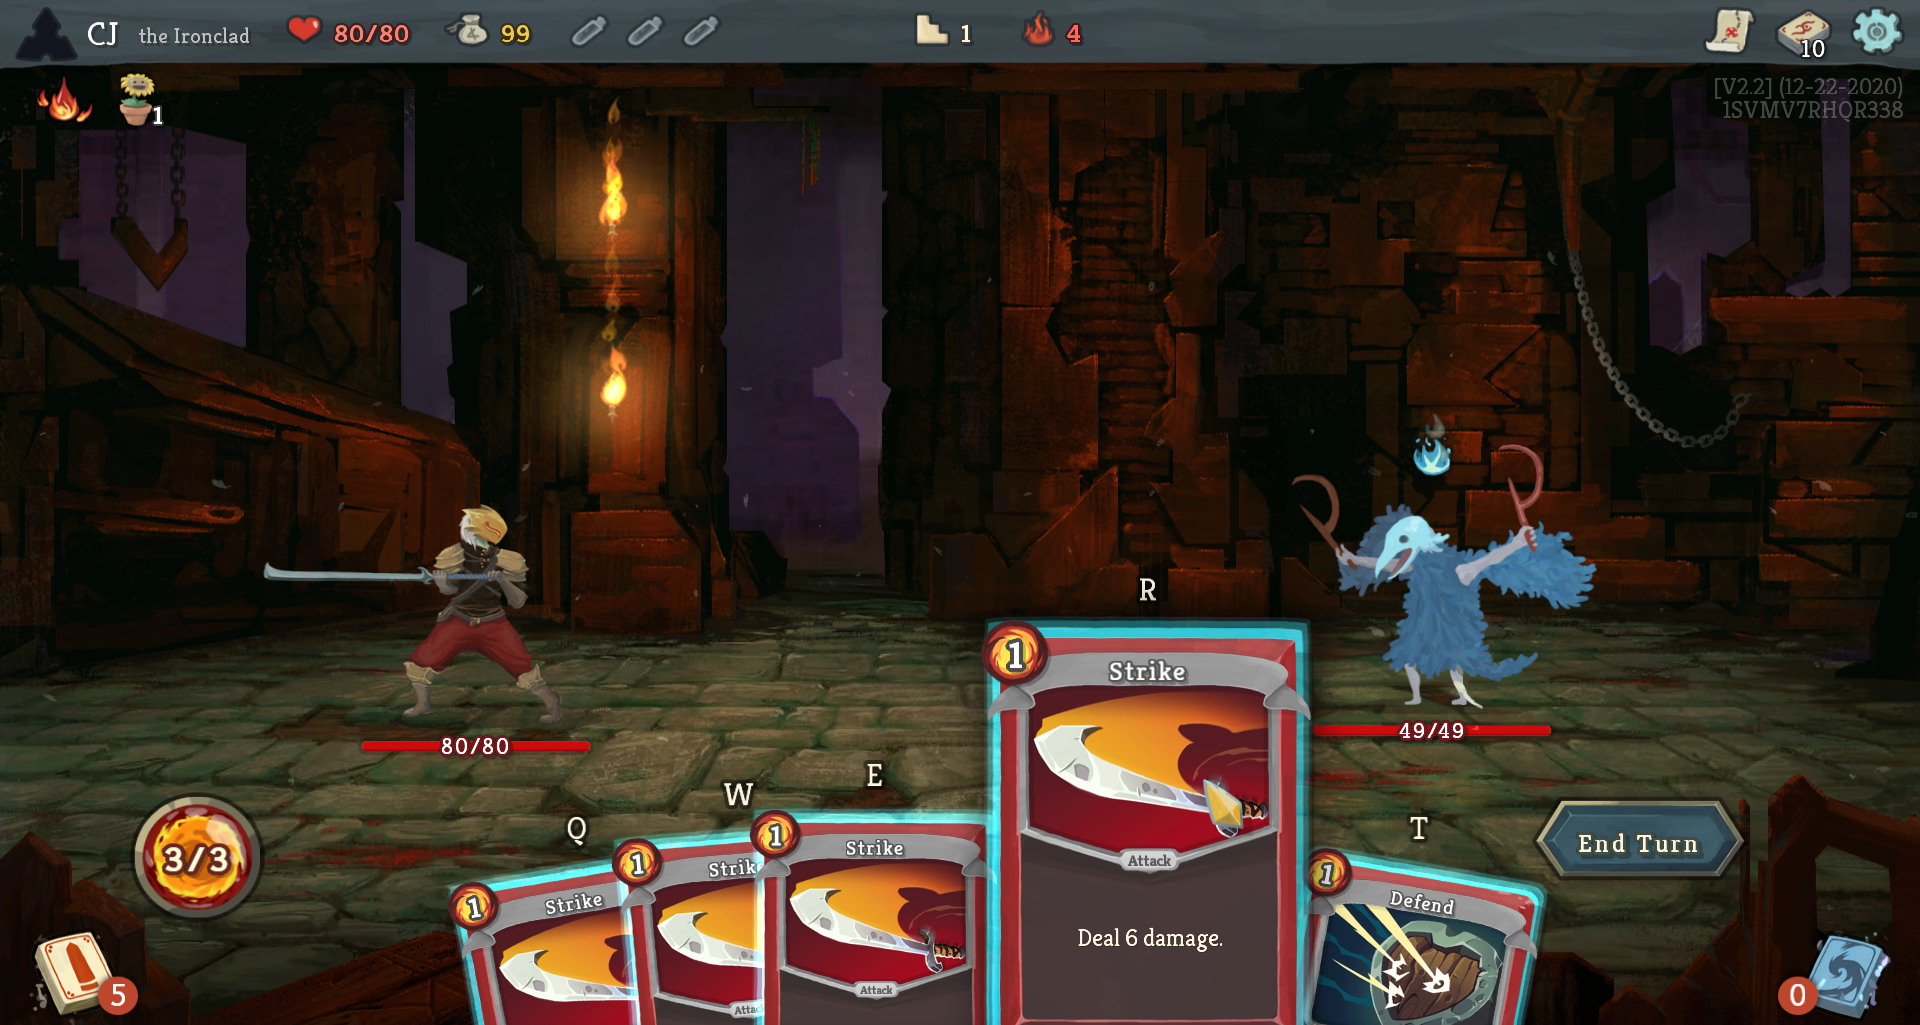 "gameplay screenshot, ""strike deal 6 damage"" is a selected card"